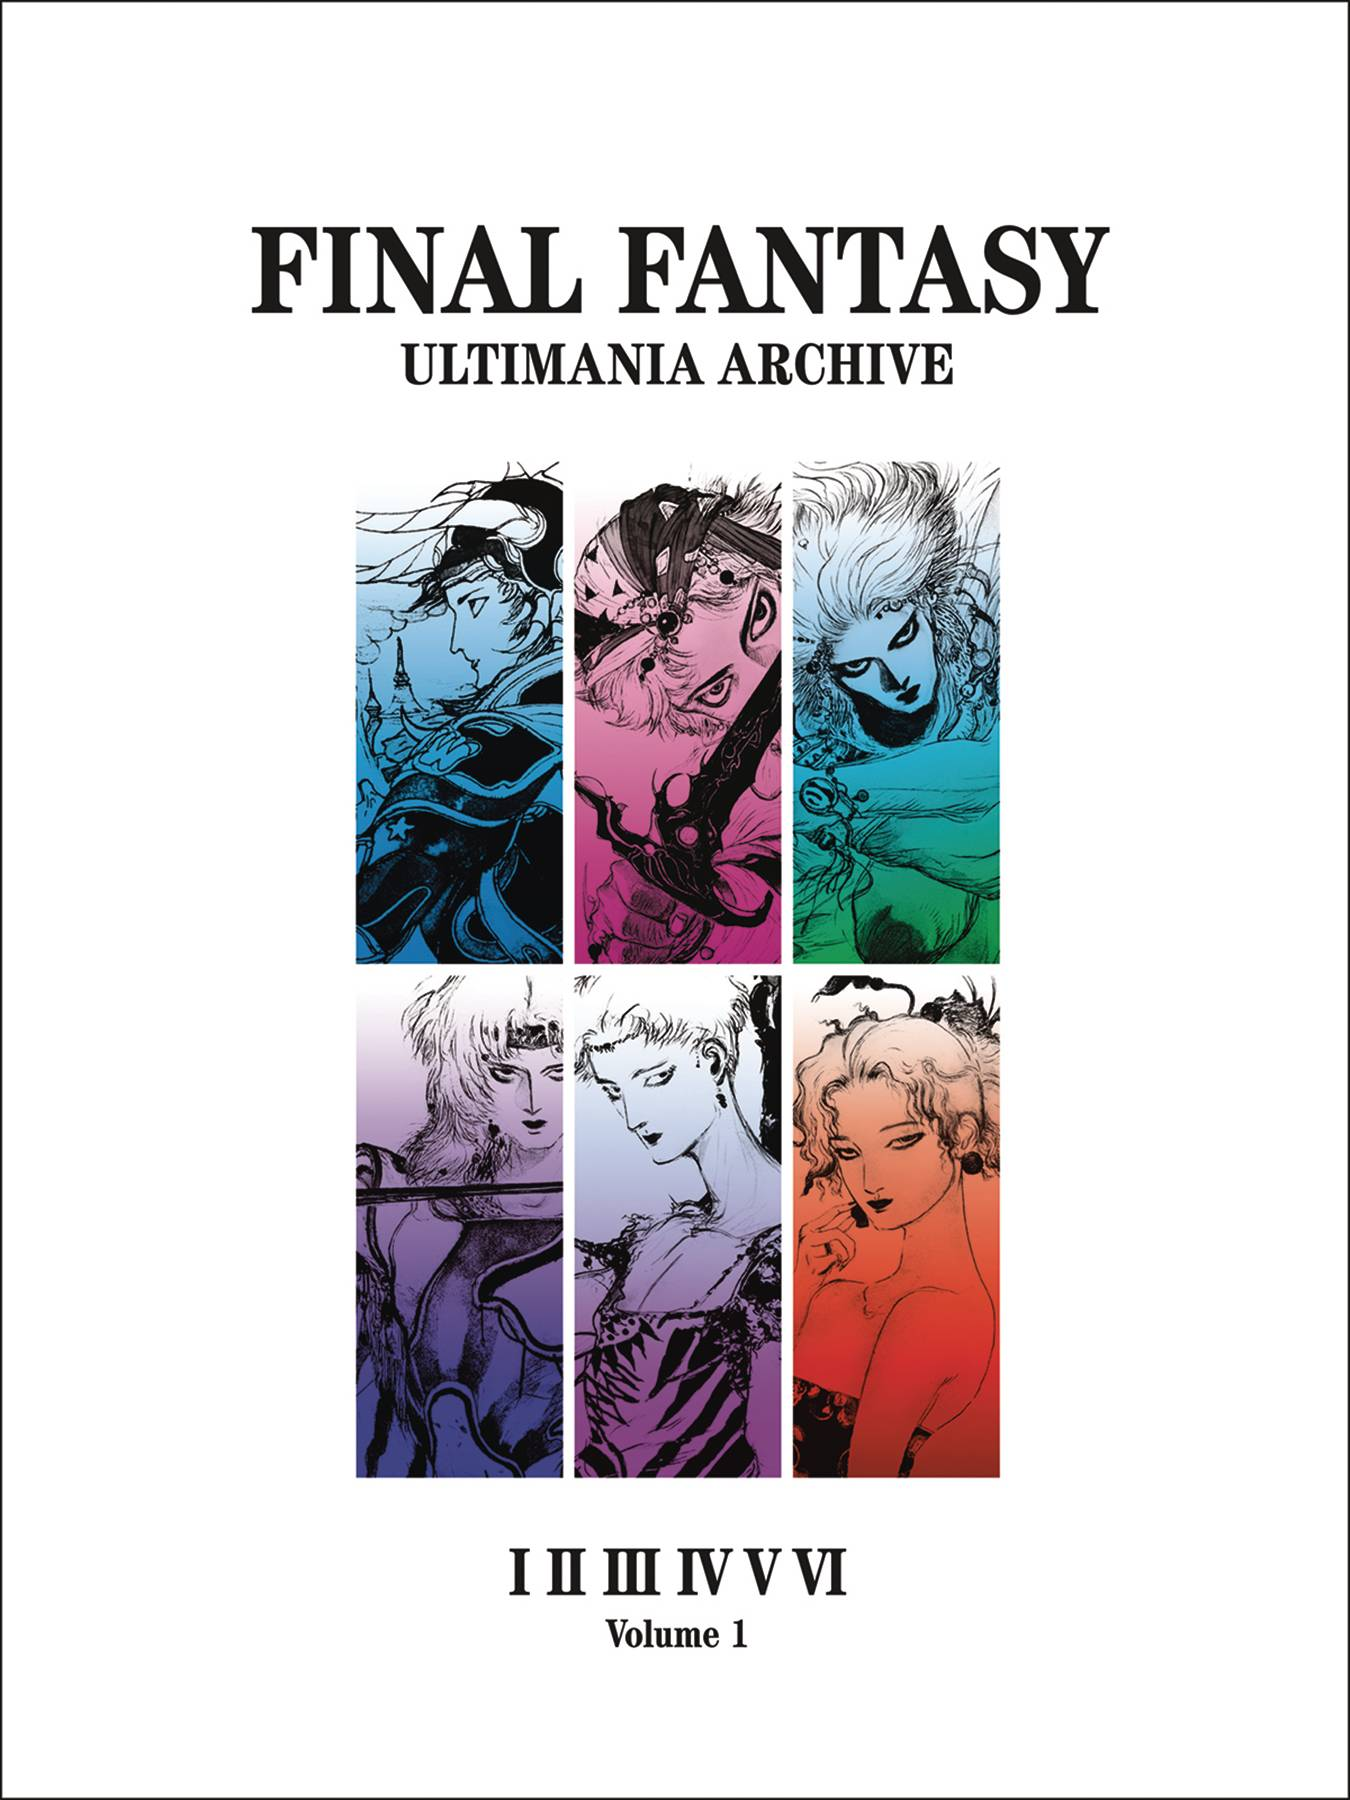 FINAL FANTASY ULTIMANIA ARCHIVE HC VOL 01 (FEB180049)